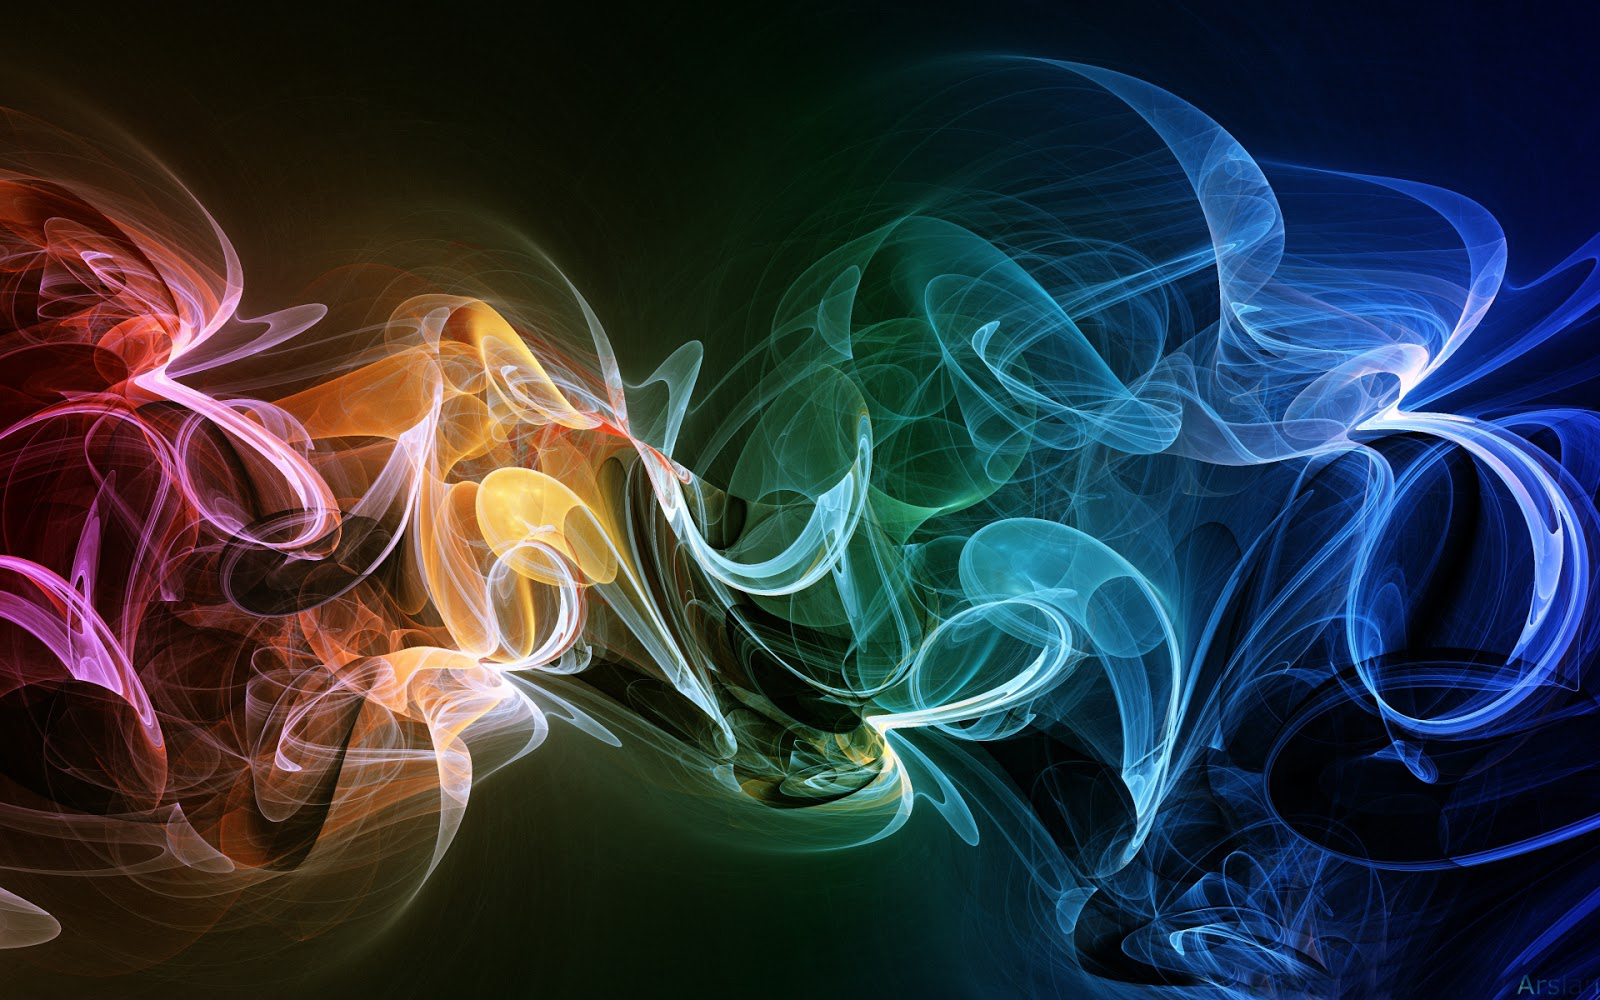 Hd Abstract Wallpapers 1080p 1600x1000